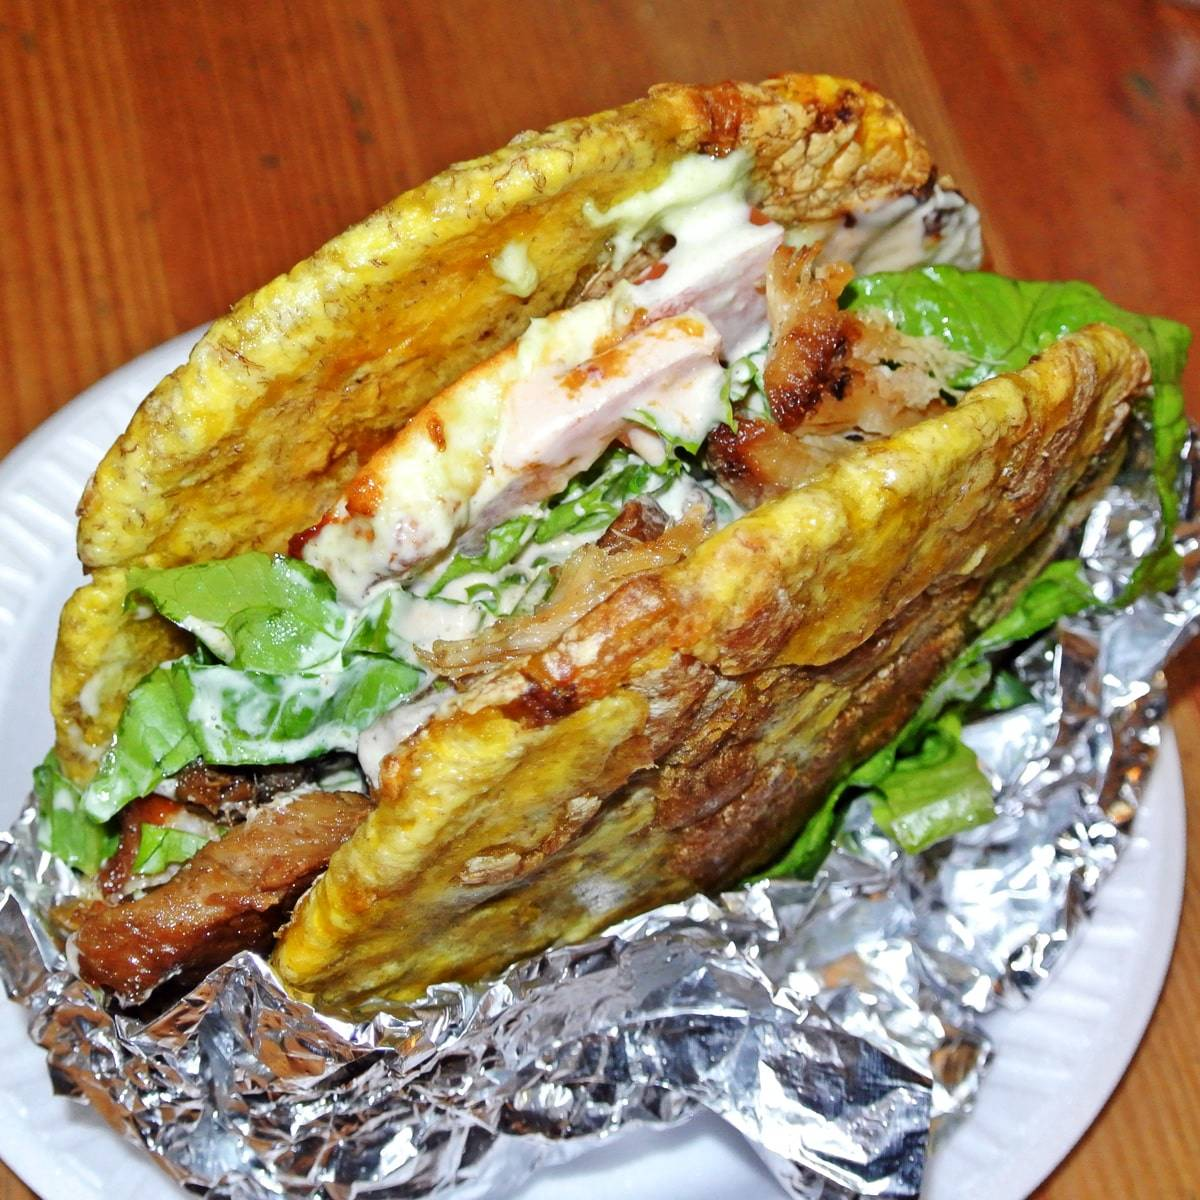 The Patacon Sandwich uses Plantains Instead of Bread at